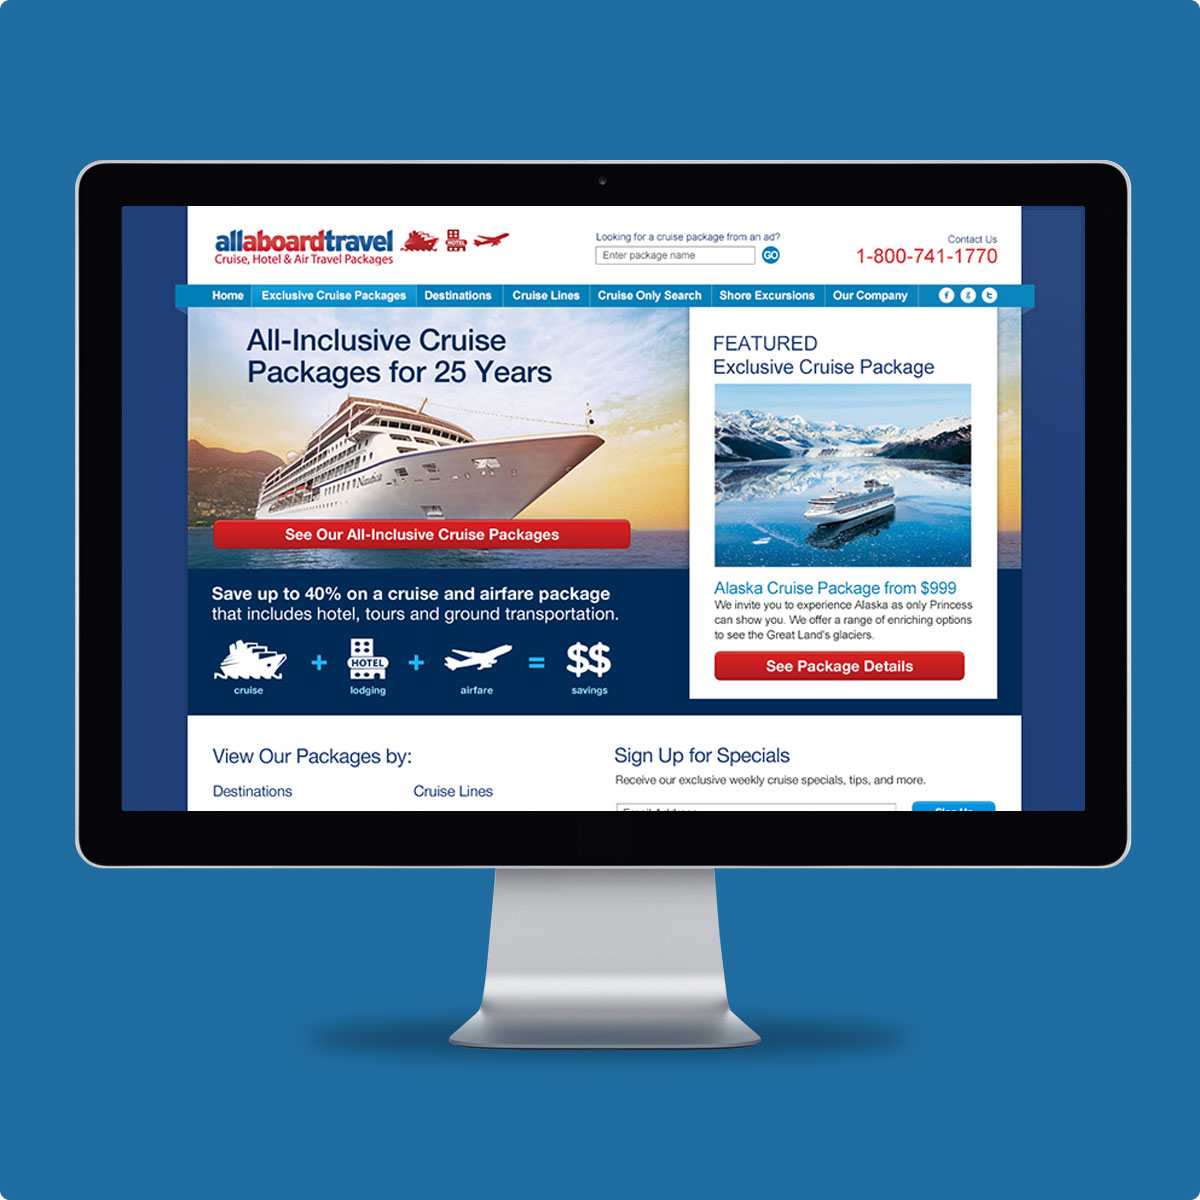 All Aboard Travel Website — Click image to view live site.